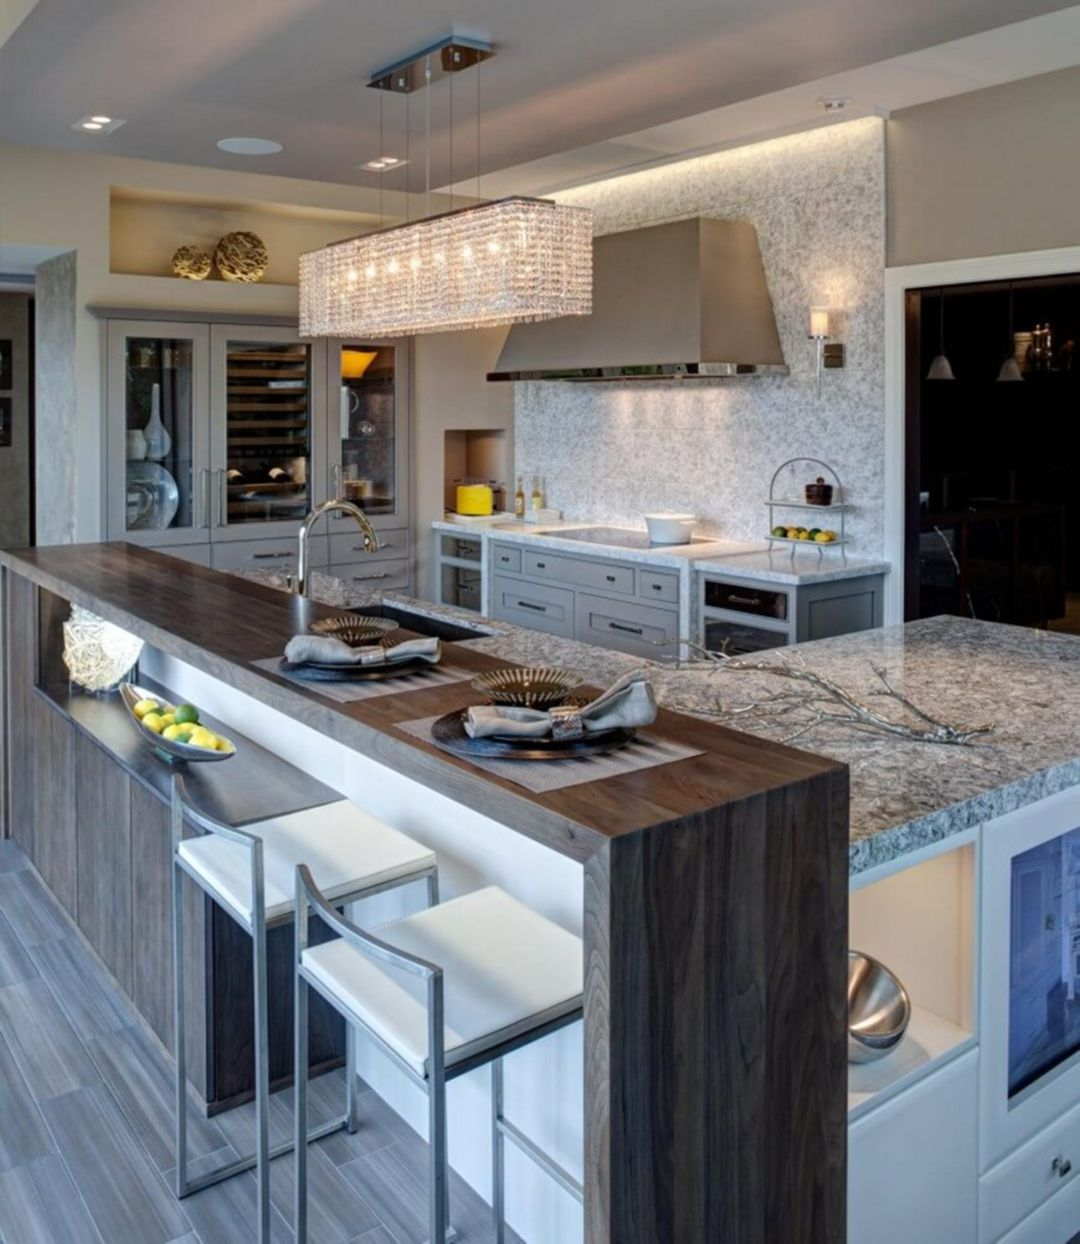 9 Inspirational Kitchen Island Design Ideas For Perfect Cooking ...